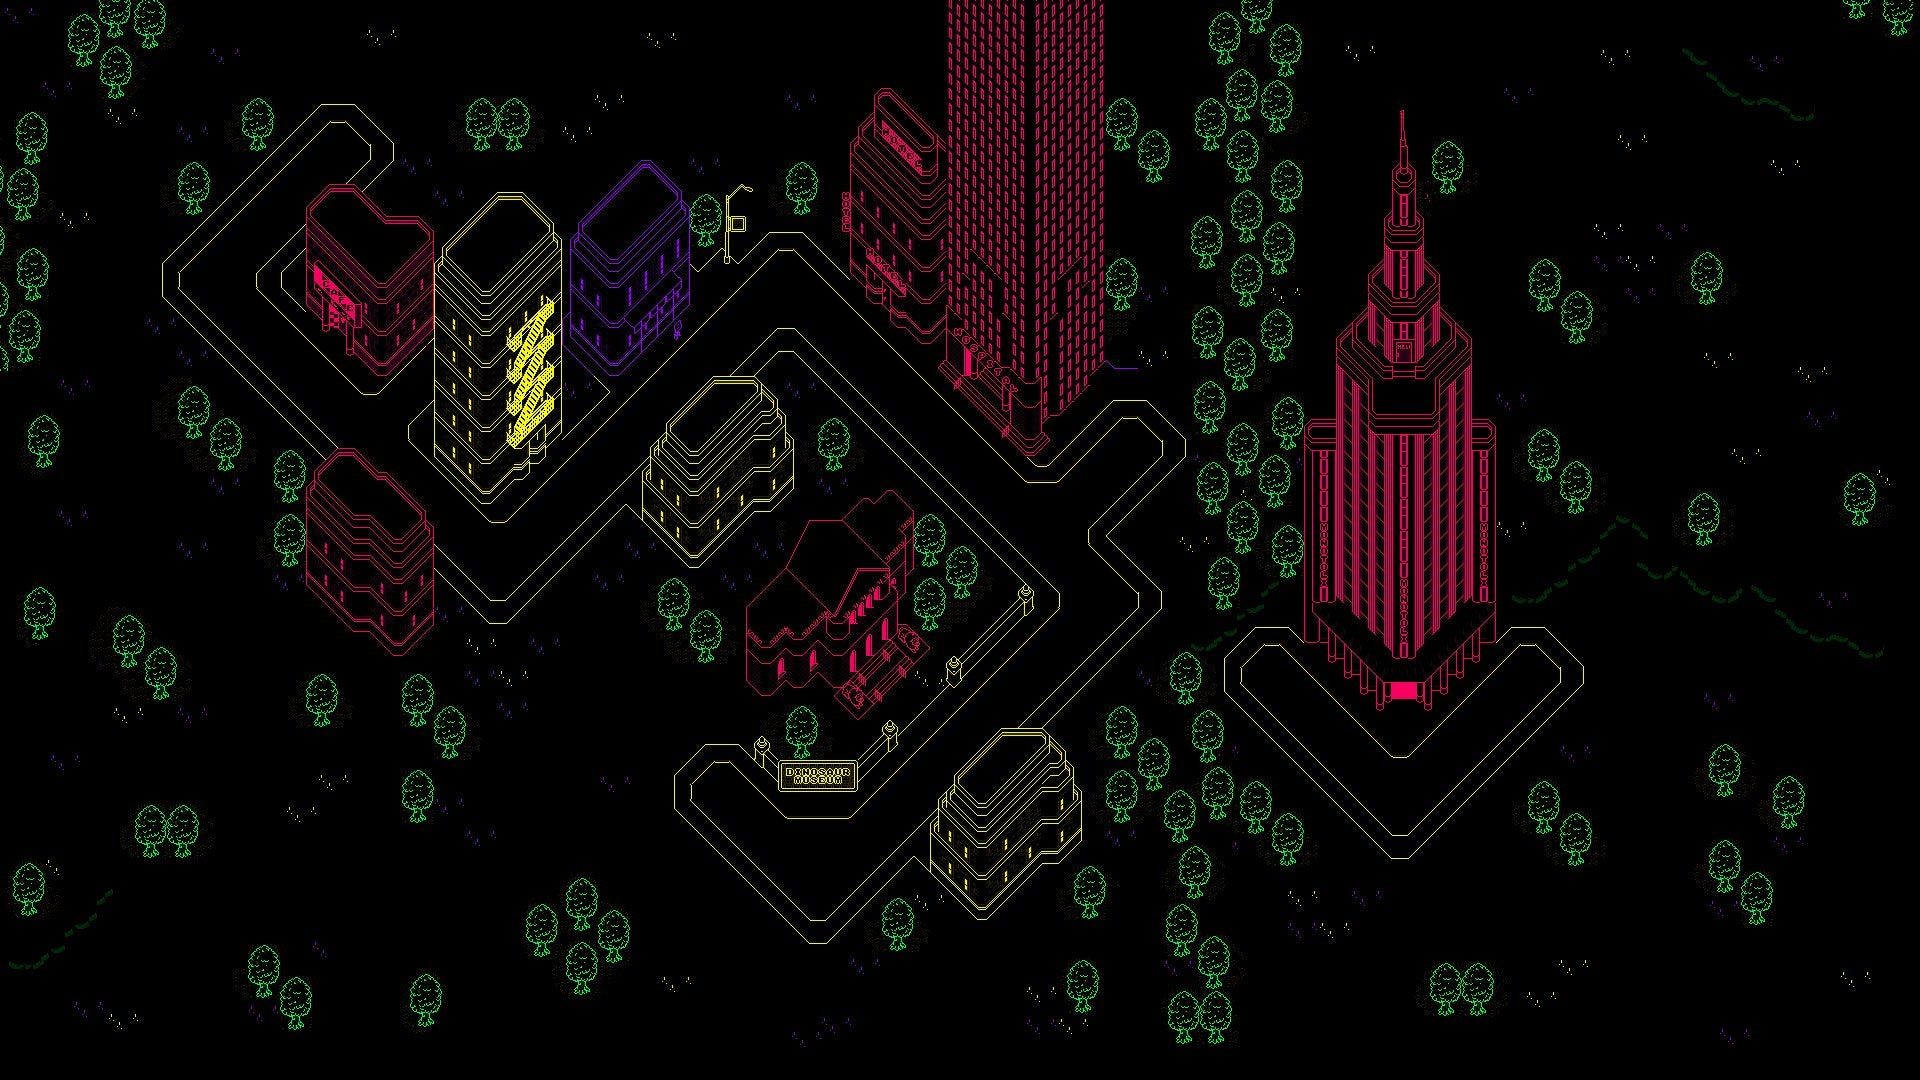 I made a 1920x1080 version of Moonside earthbound 1920x1080